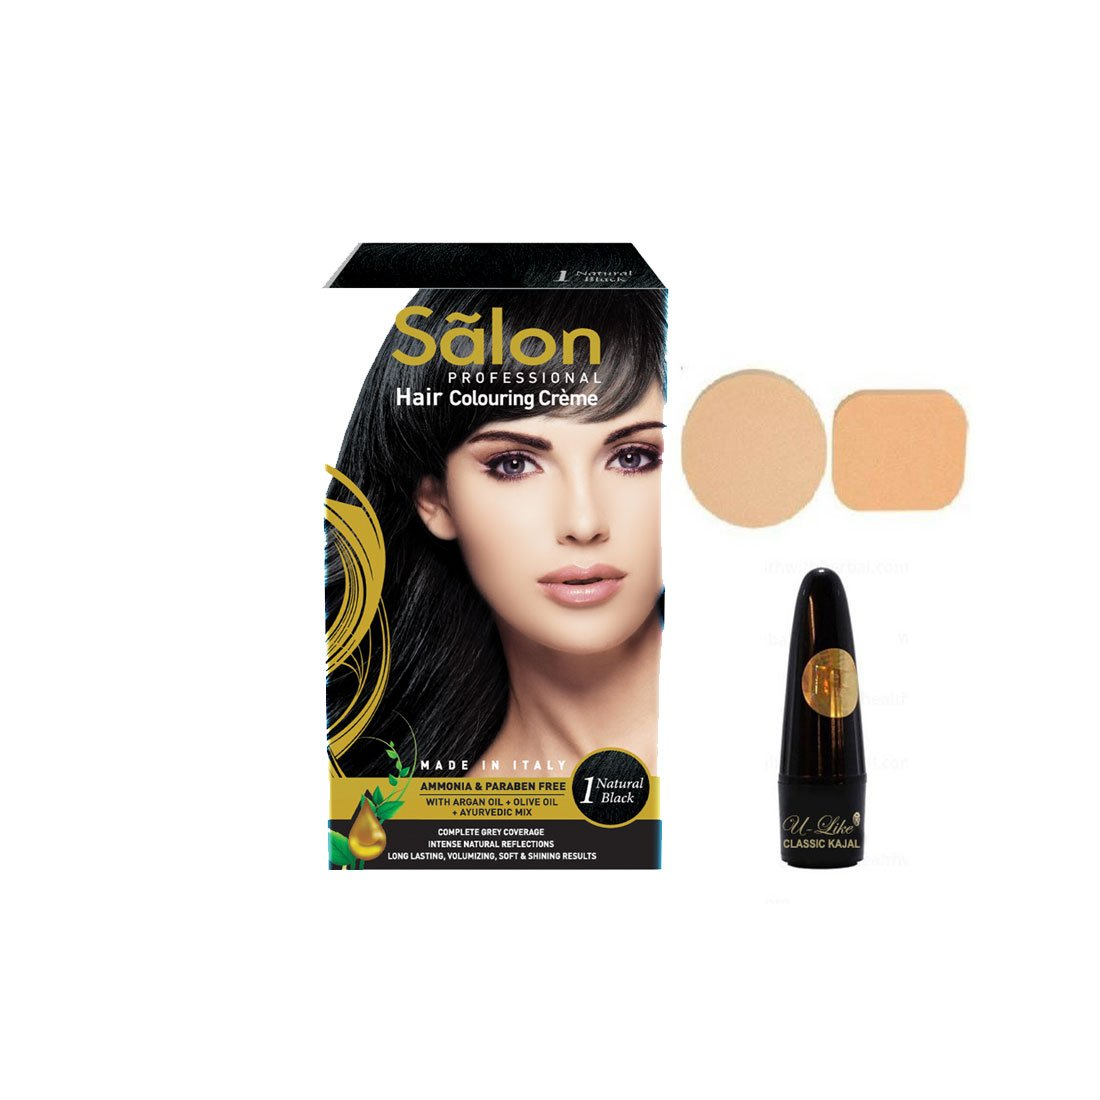 14b871d8500 Buy SALON PROFESSIONAL HAIR COLOURING CREME - NATURAL BLACK (1)(145 ml)  with U-Like Leadfree Kajal   Beauty Puff Online at Low Prices in India -  Amazon.in